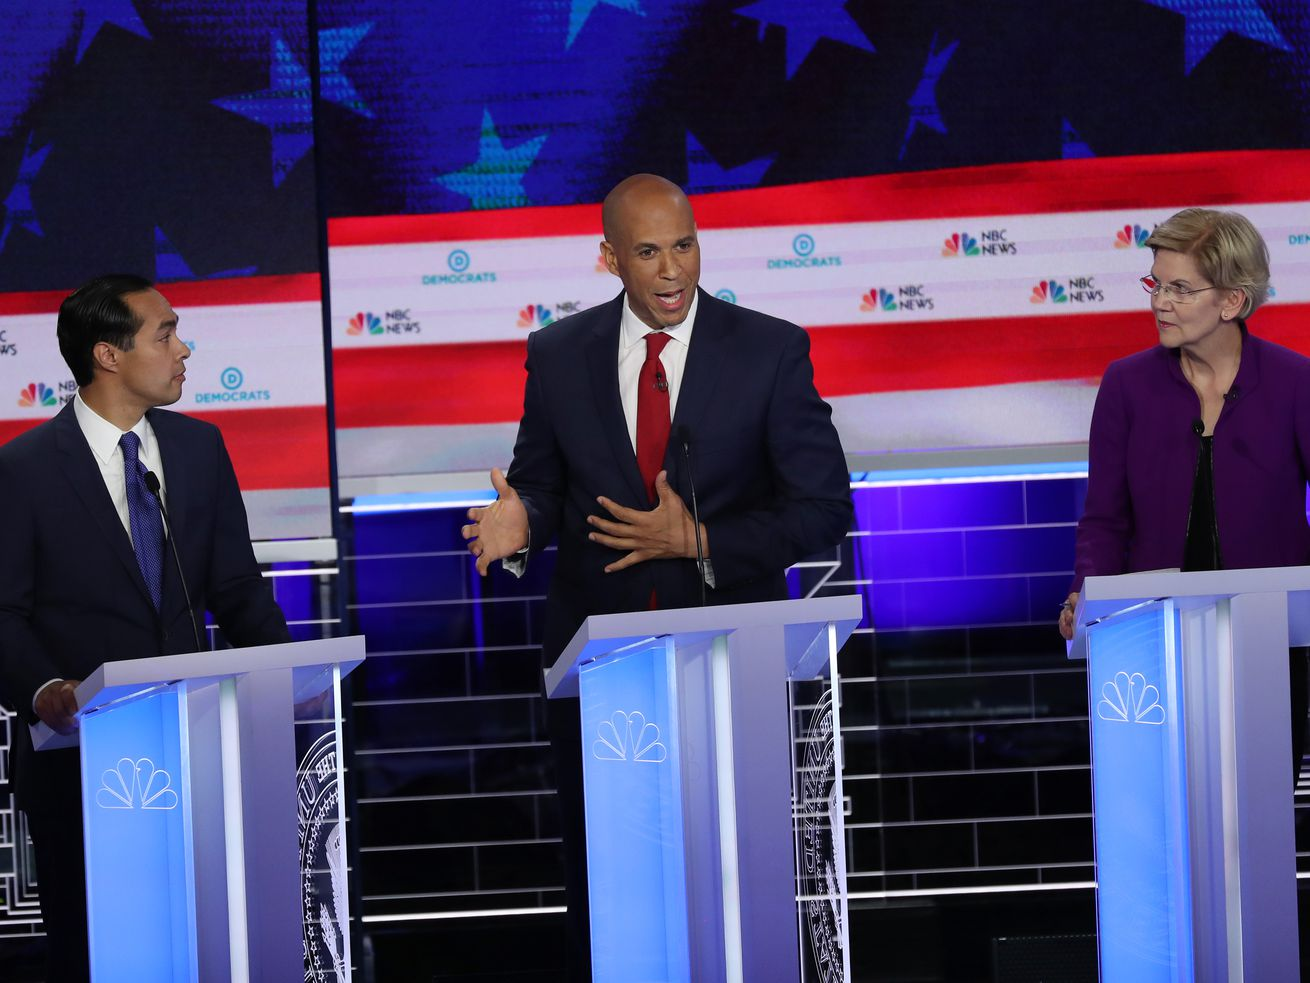 On the first night of the Democratic debate, former Housing and Urban Development Secretary Julián Castro and Sen. Cory Booker were two of a handful of candidates to talk about race and racism.